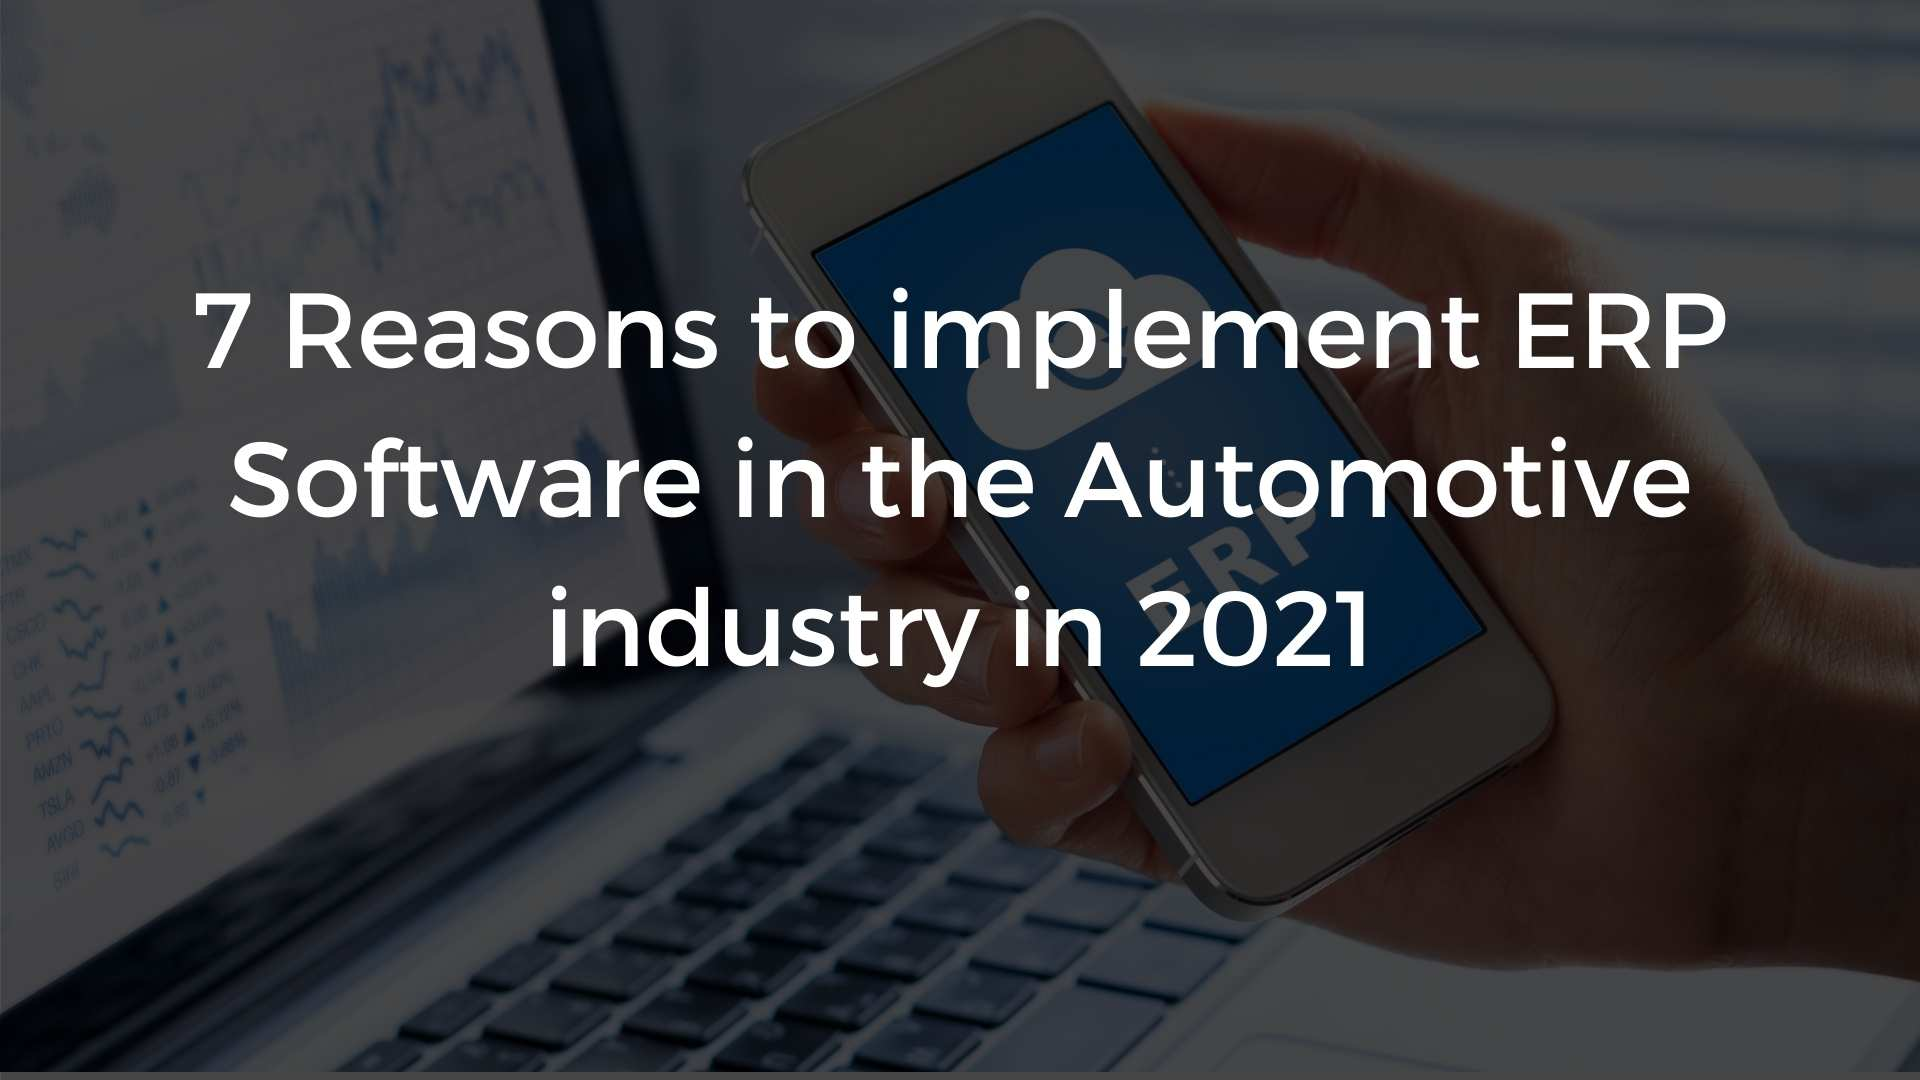 7 Reasons To Implement ERP Software In Automotive Industry In 2021